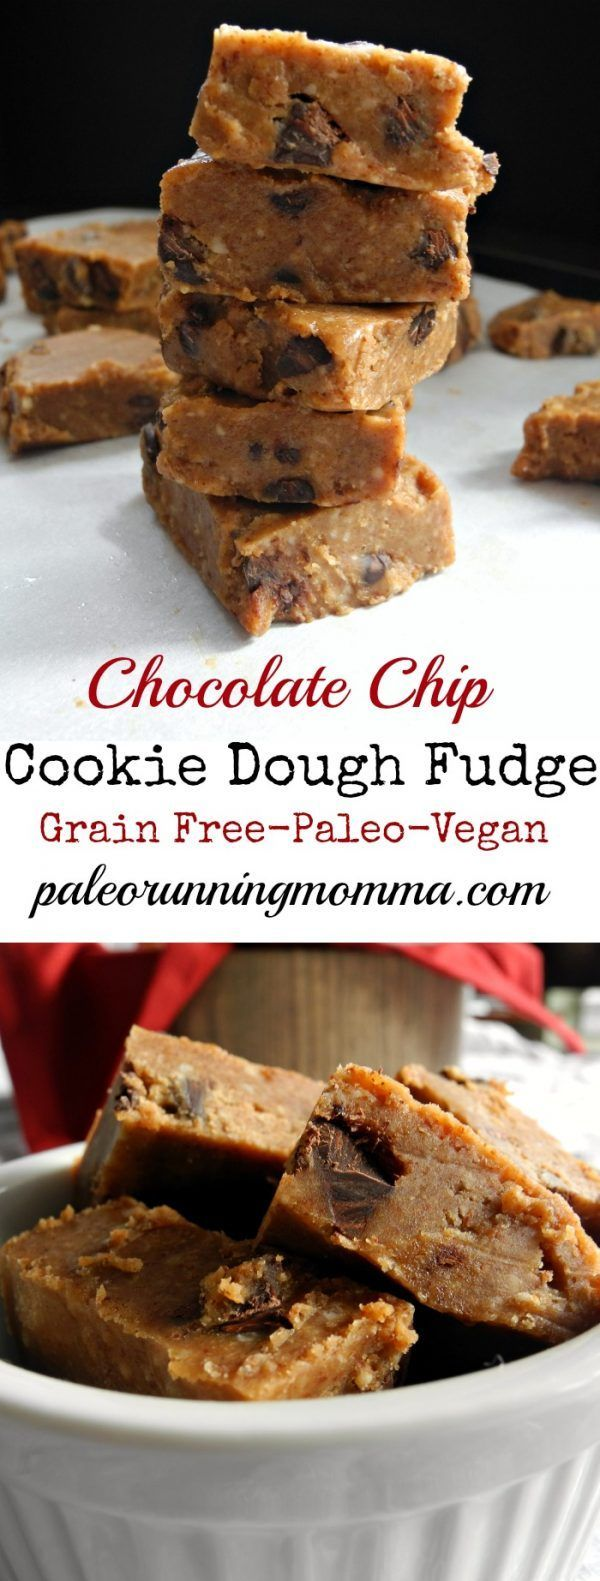 Chocolate Chip Cookie Dough Fudge - Paleo & Vegan #cookiedoughfudge Chocolate Chip Cookie Dough Fudge #glutenfree #grainfree #vegan #paleo #vegancookiedough